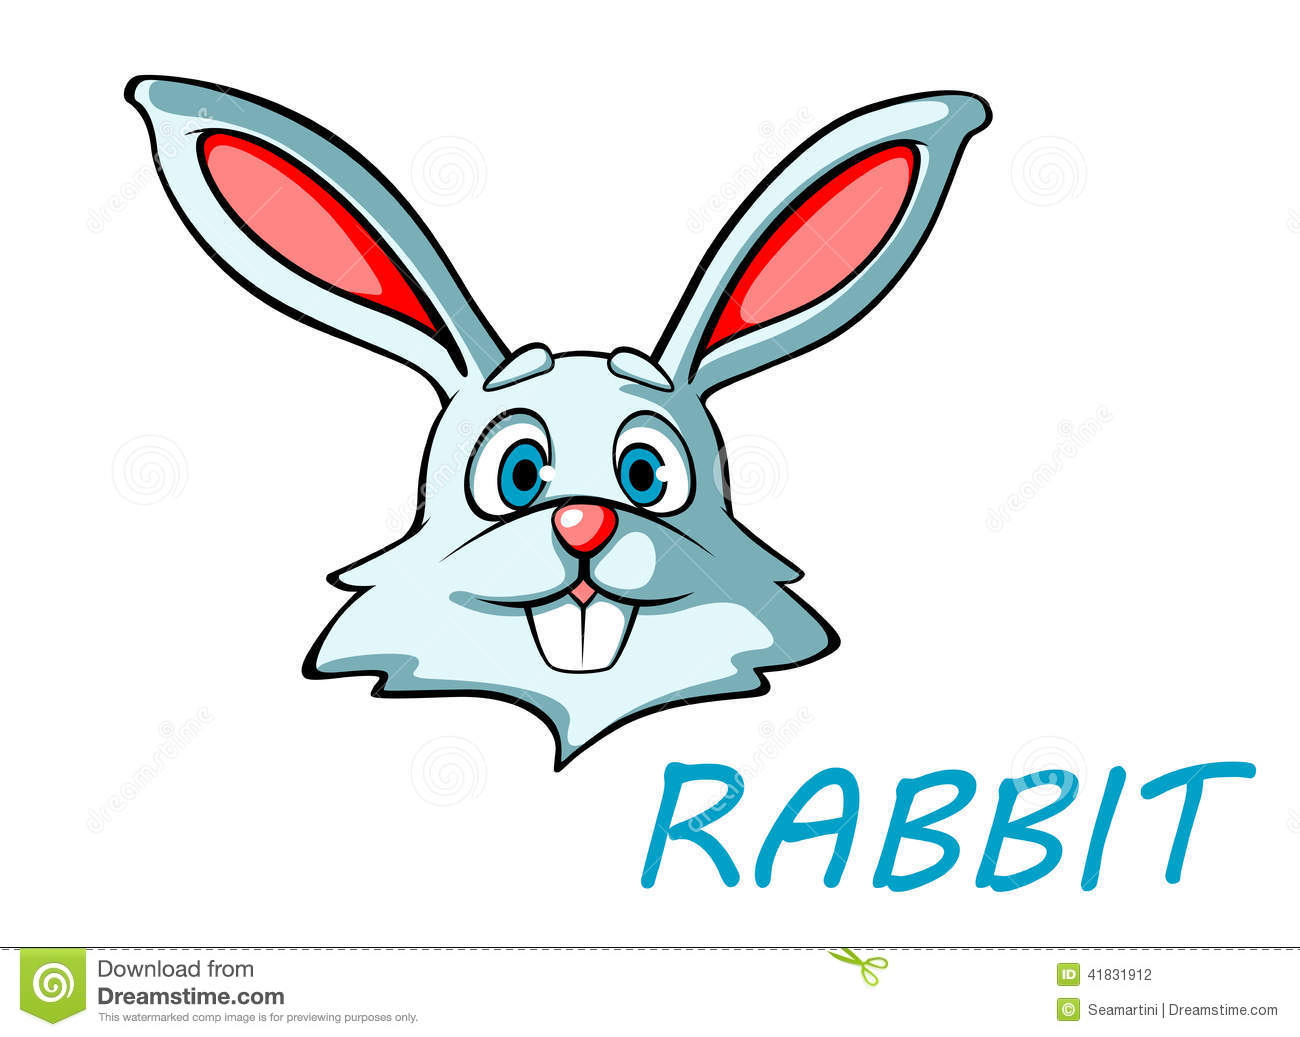 Funny cartoon rabbit or hare head for mascot or easter holiday design.